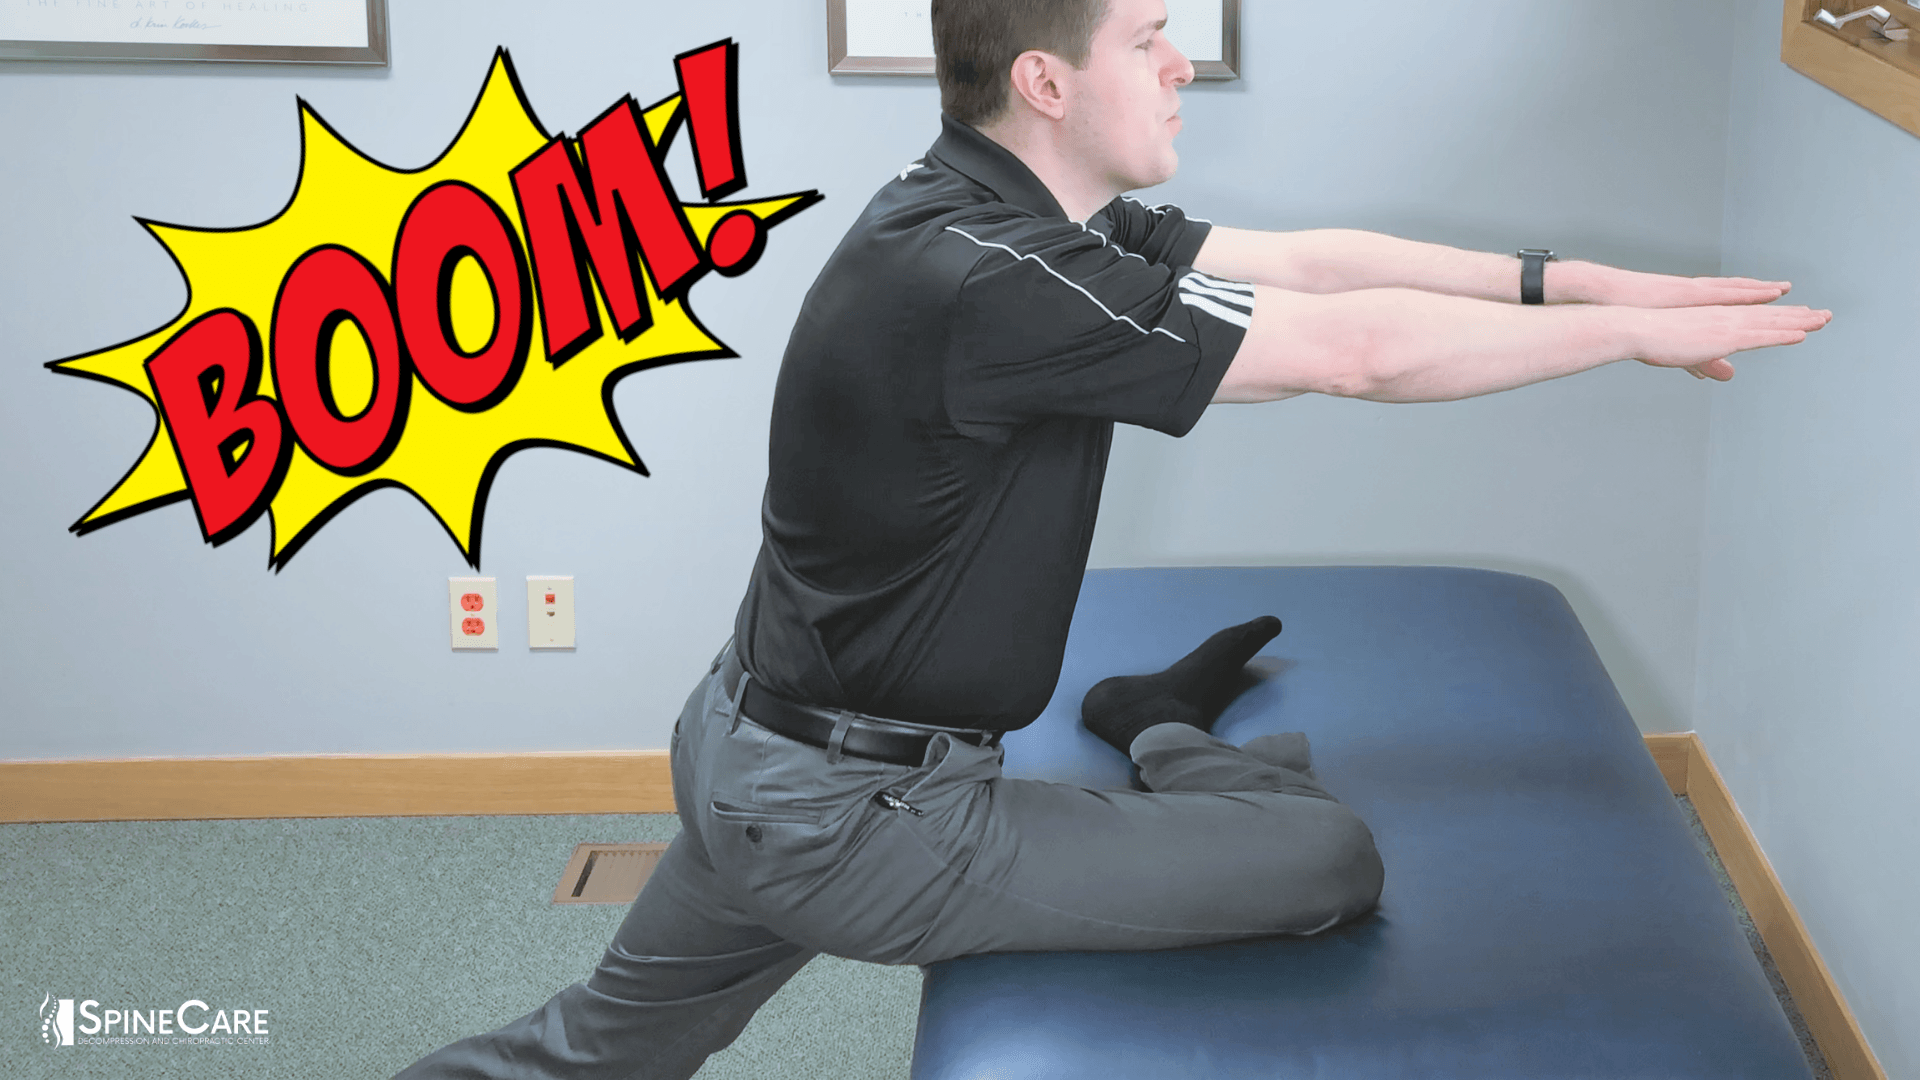 How to Get a DEEP Buttock Stretch | Dr. Rowe St. Joseph, MI Chiropractor